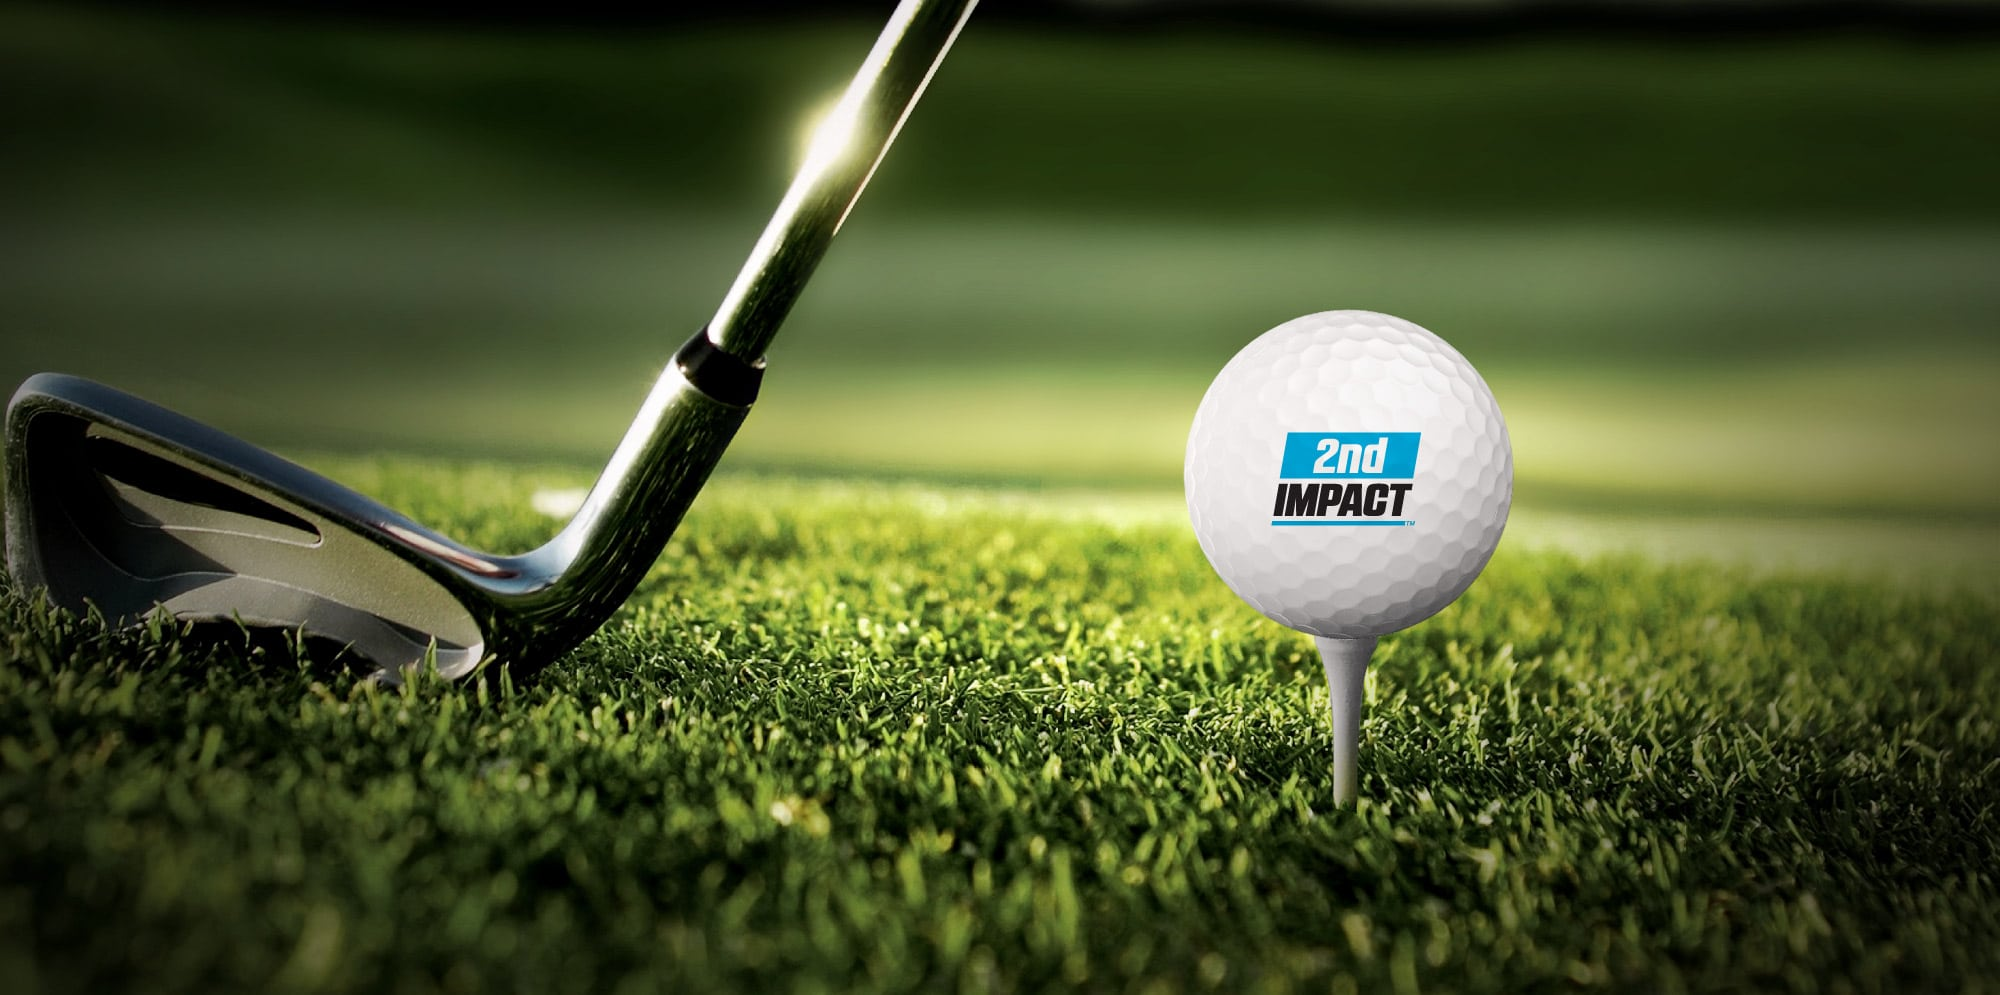 2nd Impact Branded golfball